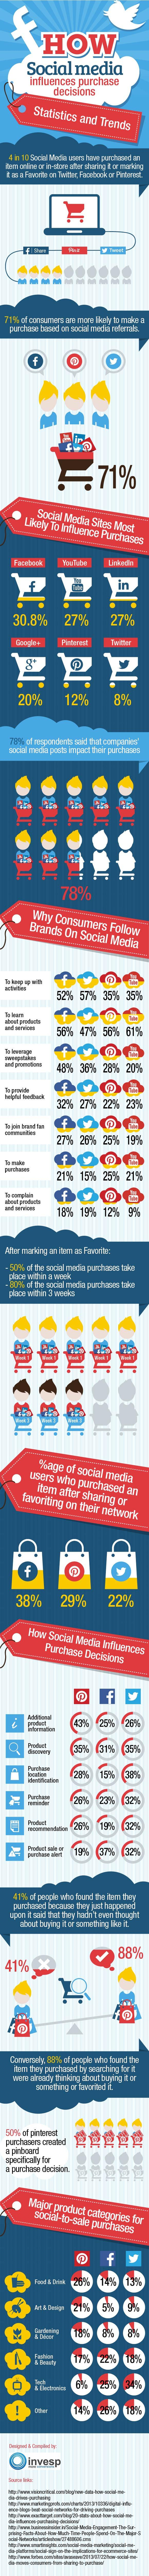 How-To Attract More Customers Trough Social Media [INFOGRAPHIC]